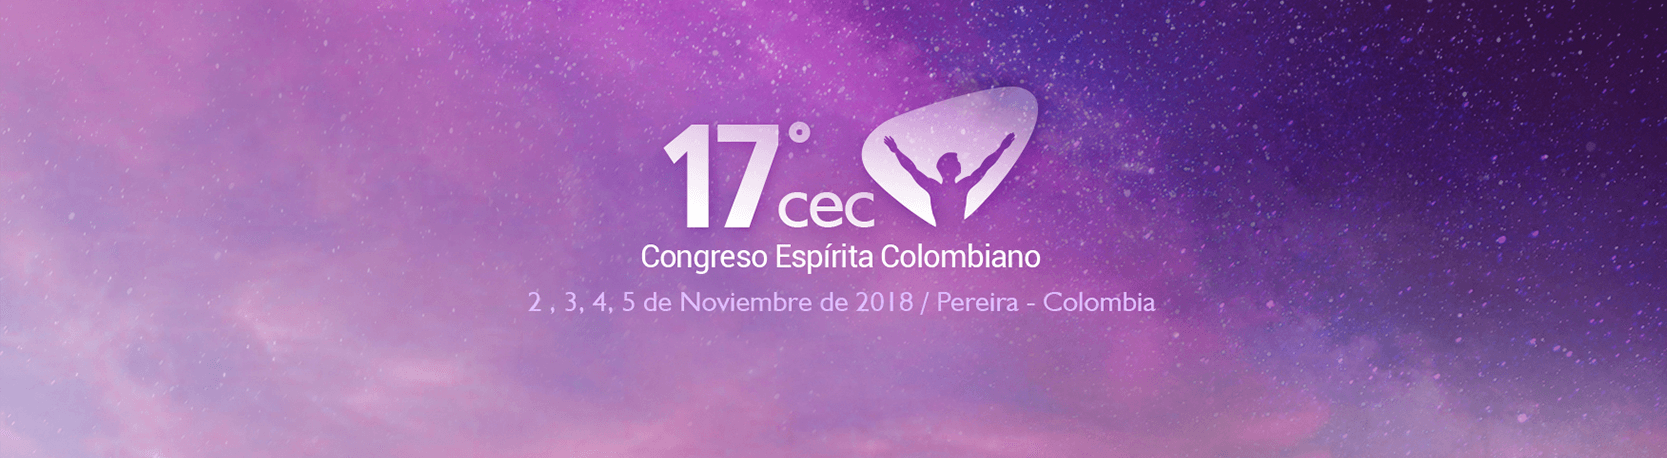 carrusel slide congreso2018